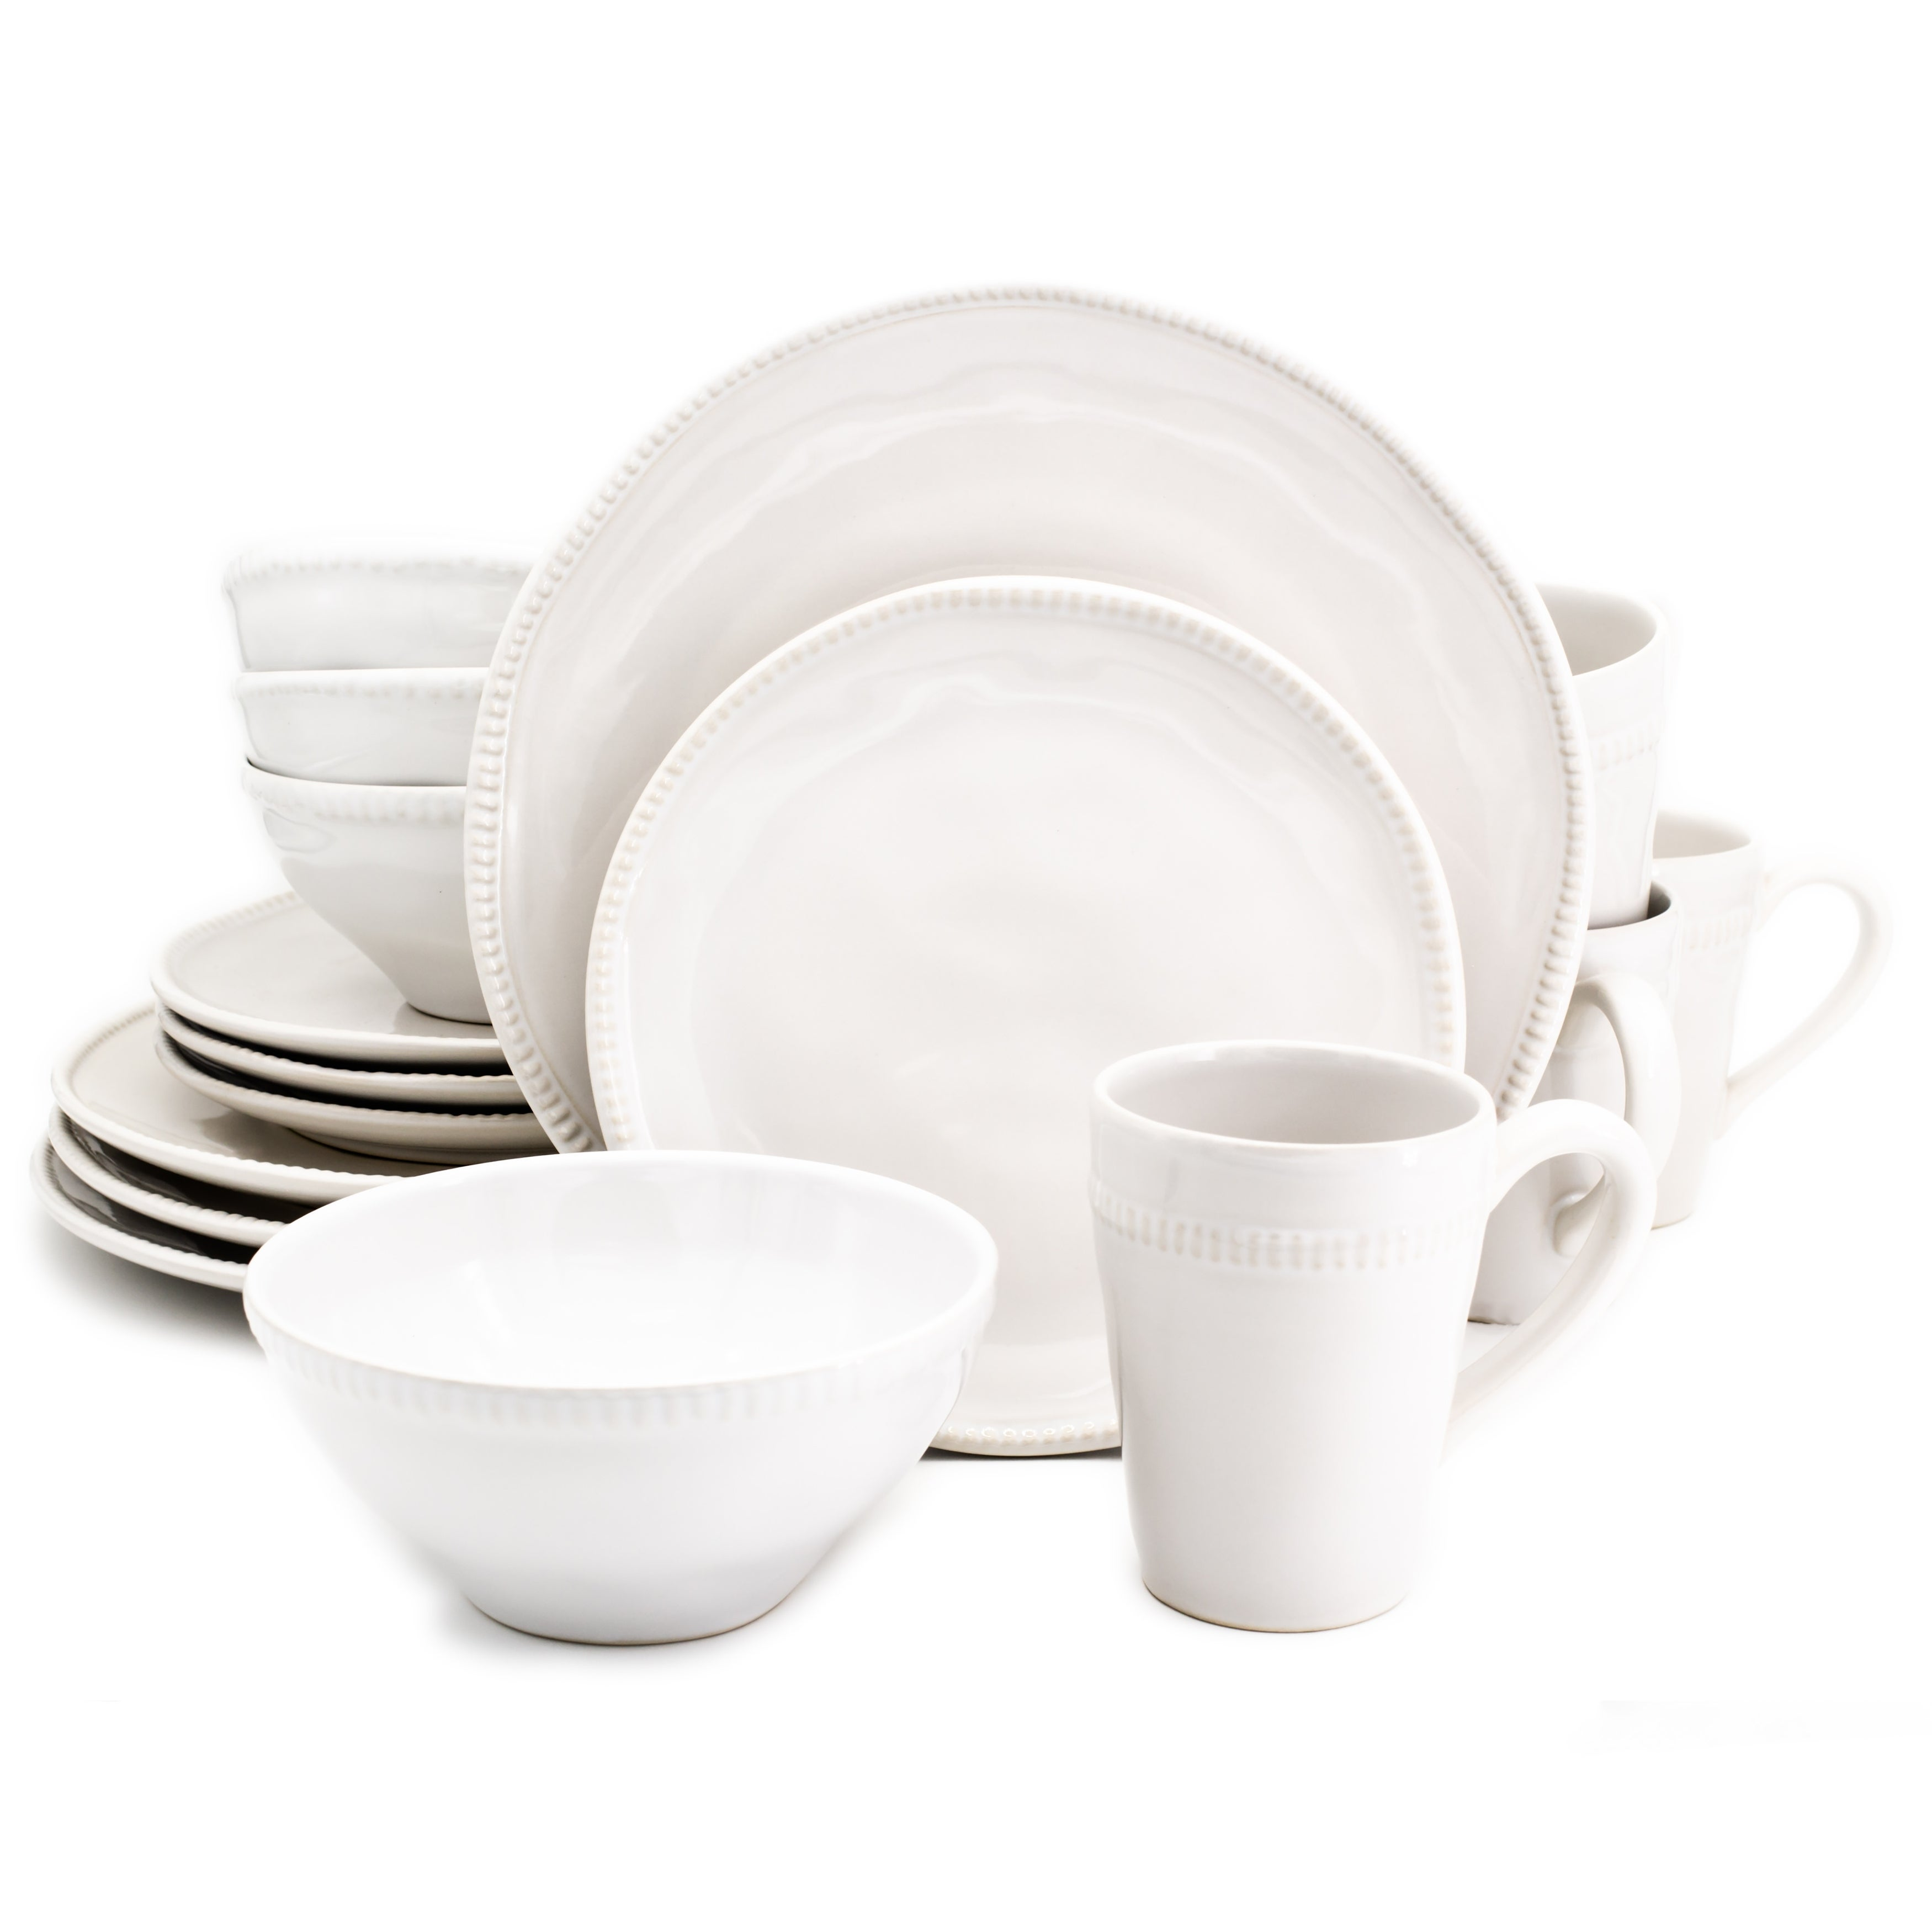 Help  sc 1 st  eBay & Euro Ceramica Algarve 16 Piece Dinnerware Set in Red | eBay